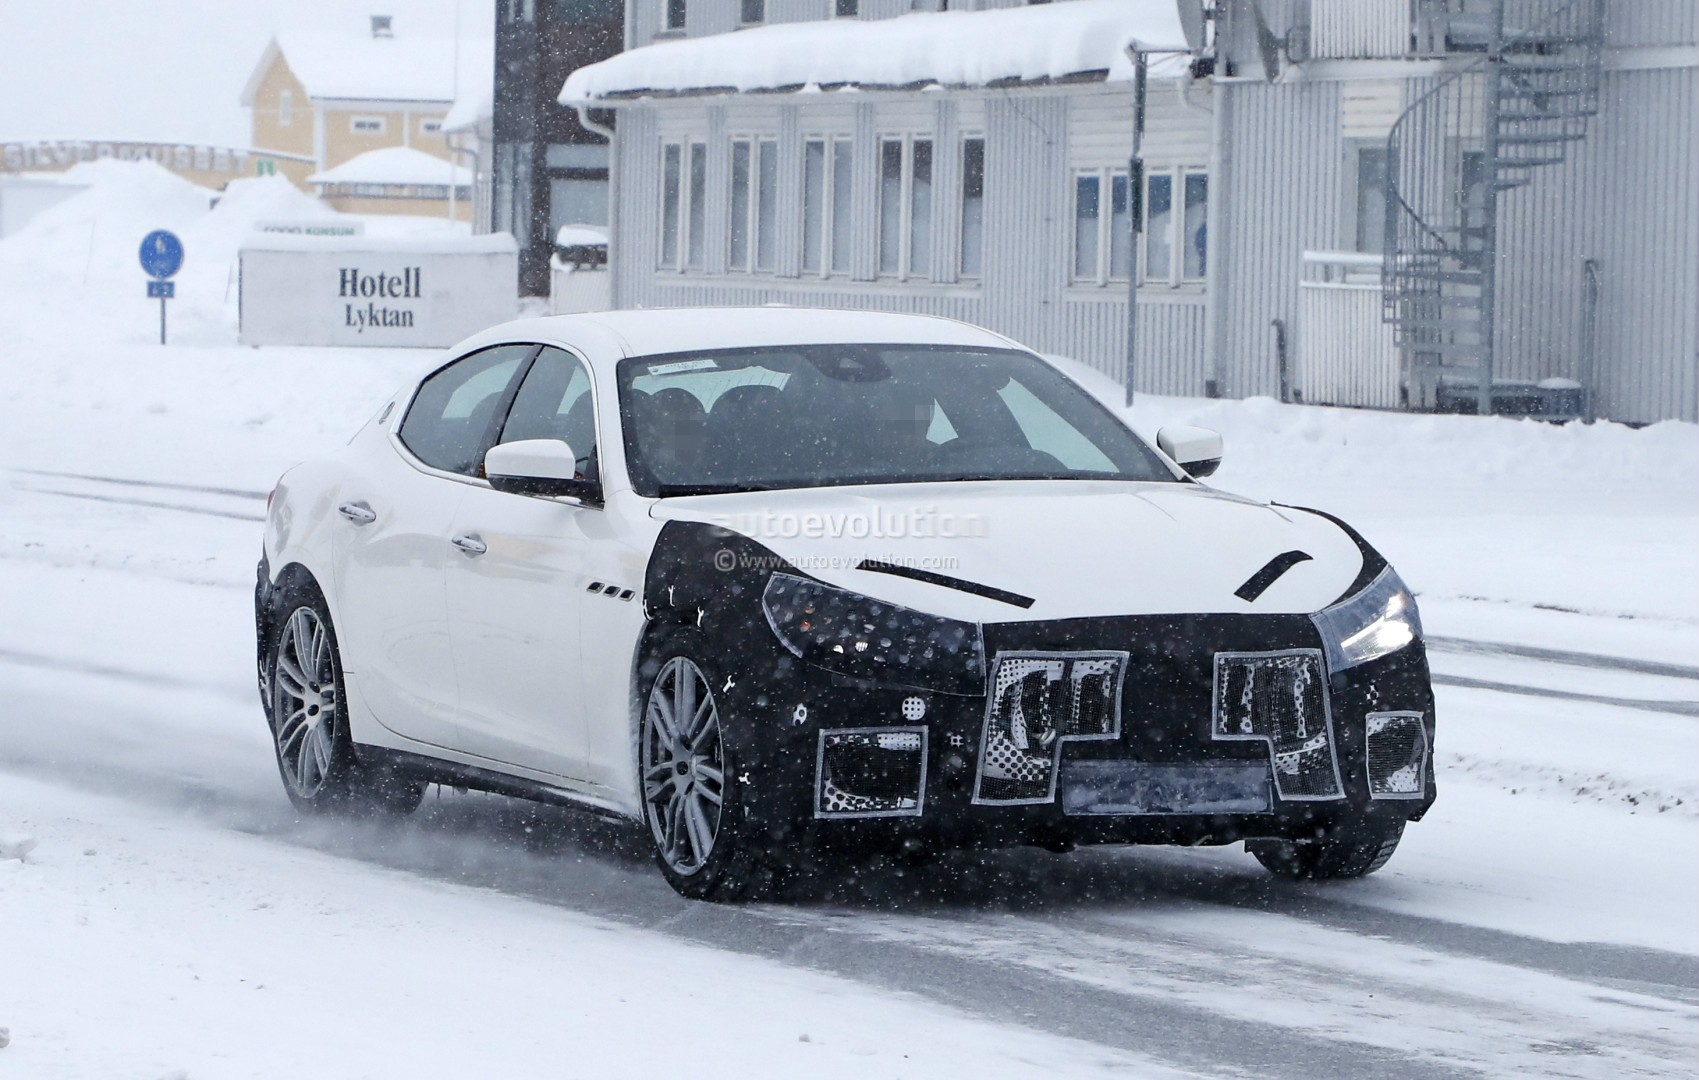 https://s1.cdn.autoevolution.com/images/news/gallery/2018-maserati-ghibli-spied-in-sweden-angry-look-prototype-hides-a-meaner-grille_3.jpg